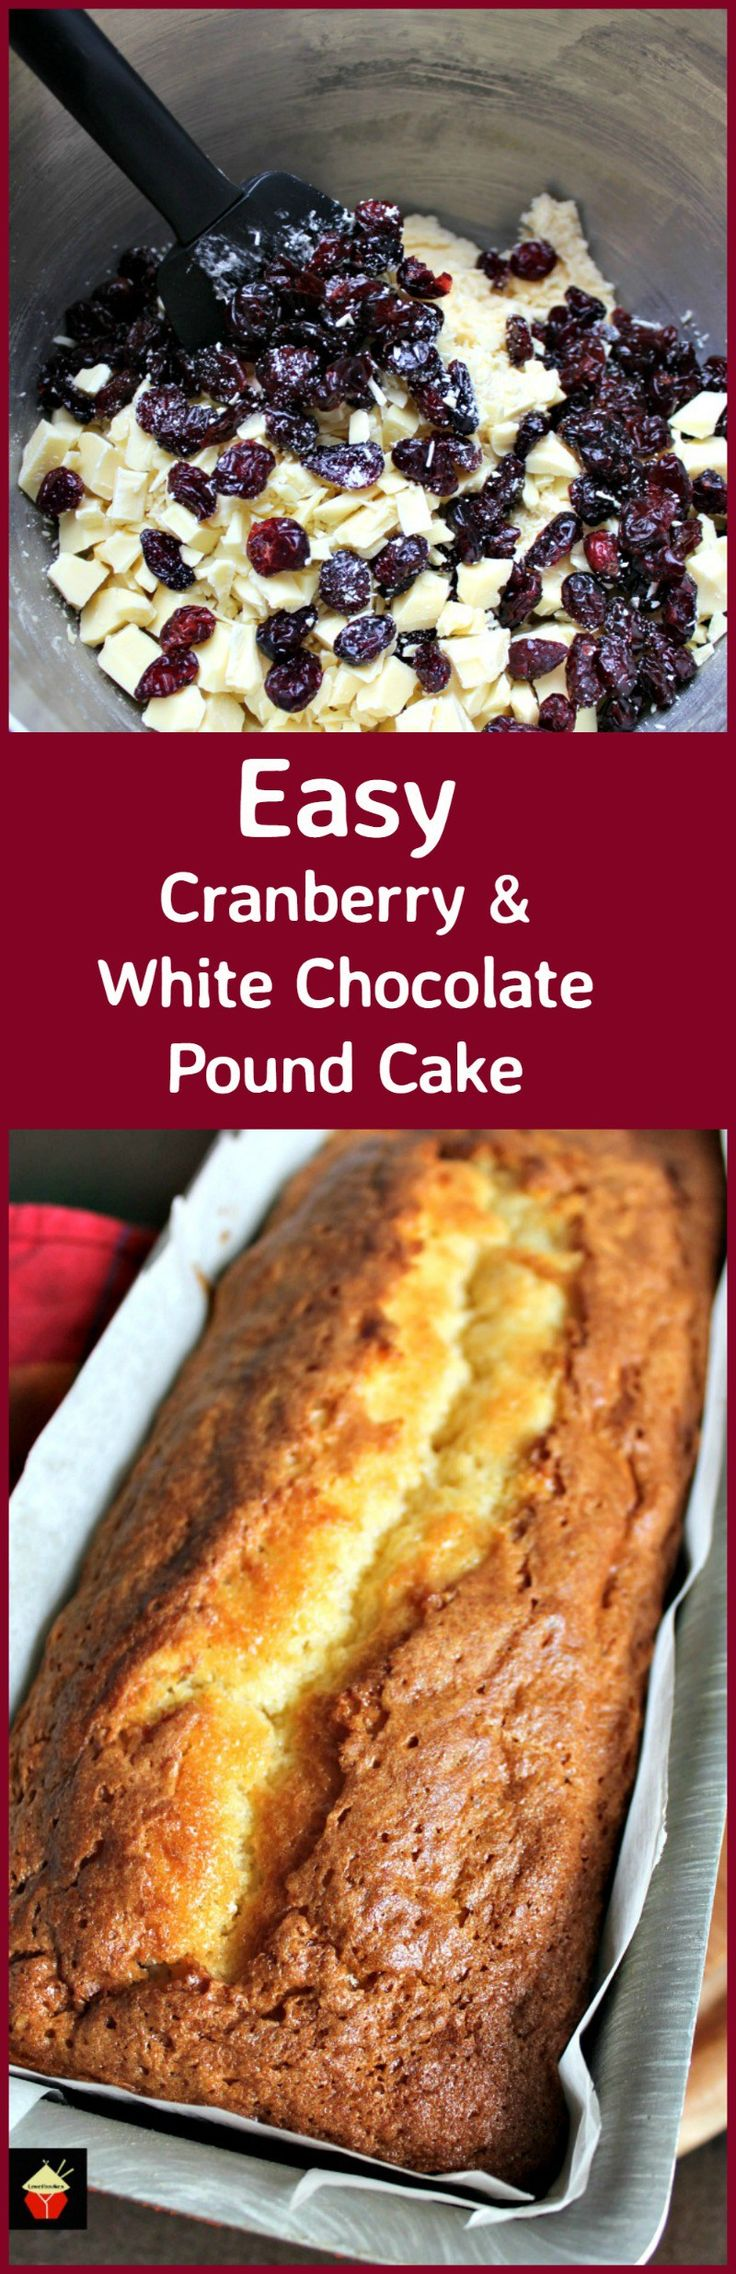 Easy Cranberry and White Chocolate Pound Cake. This is a delicious soft and moist pound cake with a wonderful white chocolate flavor and added lovely cranberries. Freezer friendly and easy to make. | Lovefoodies.com